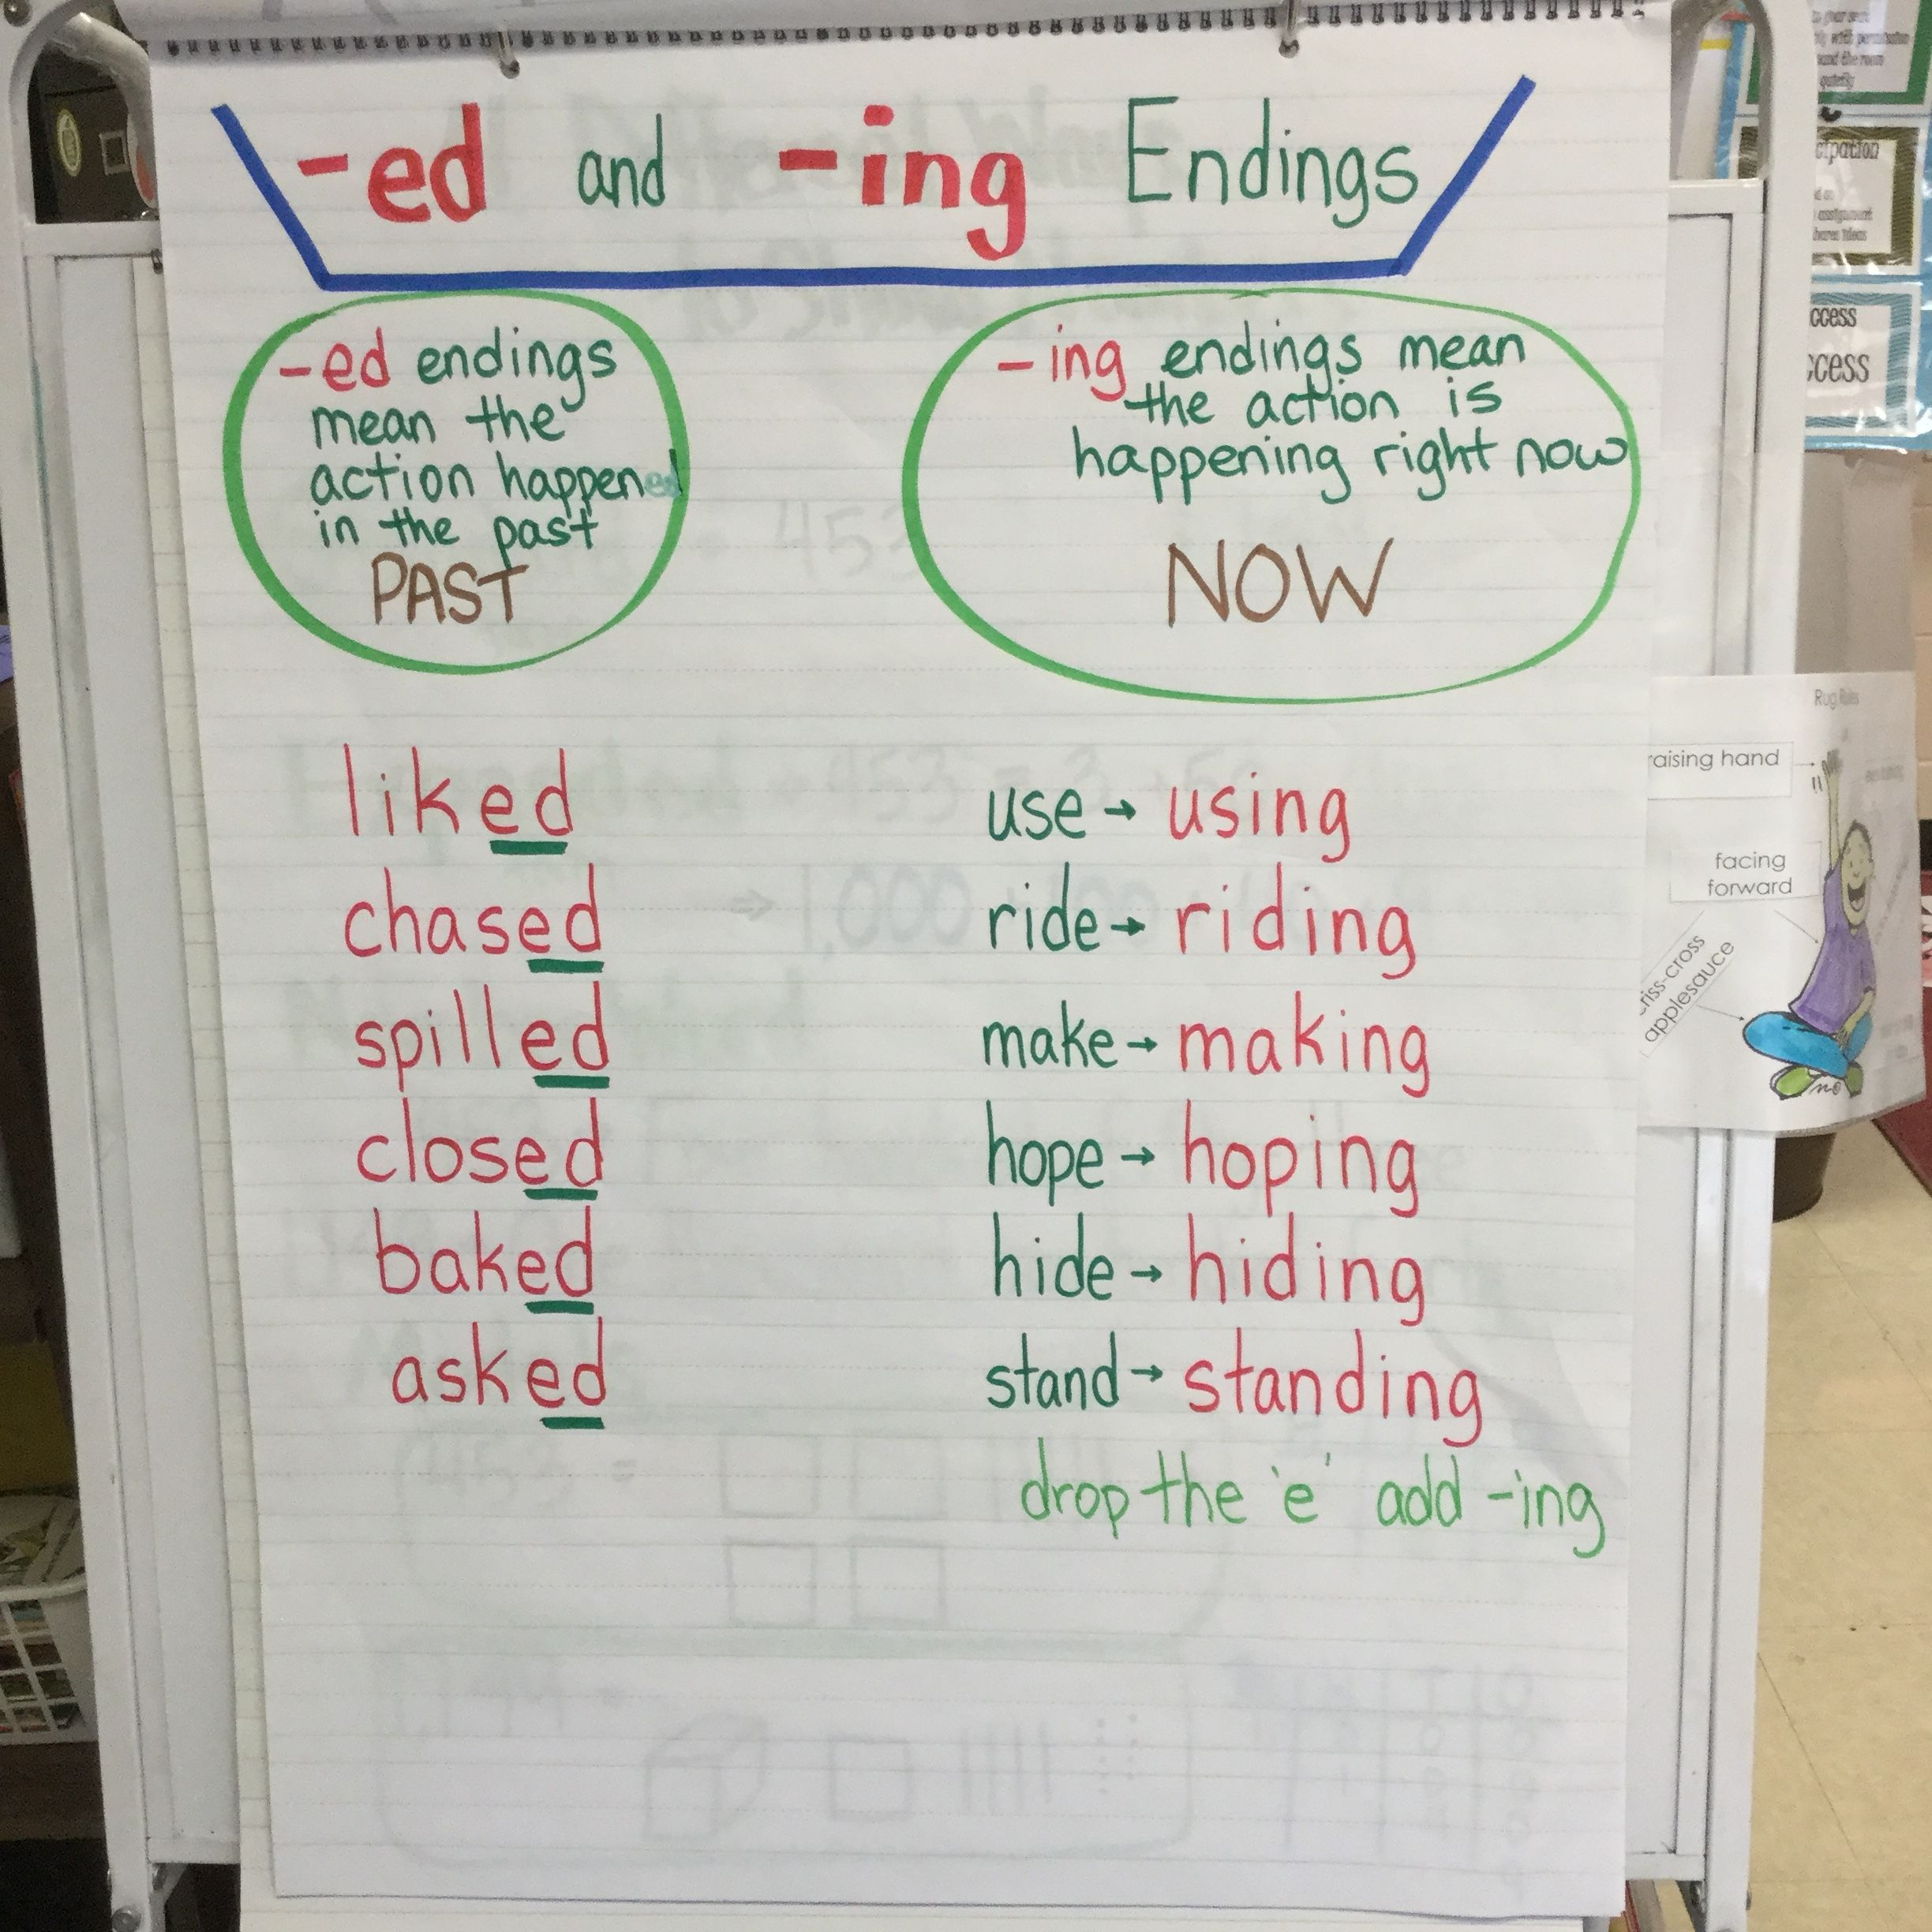 Ed And Ing Endings Drop The E And Add Ing Inflectional Endings Classroom Anchor Charts Kindergarten Anchor Charts [ 2448 x 2448 Pixel ]